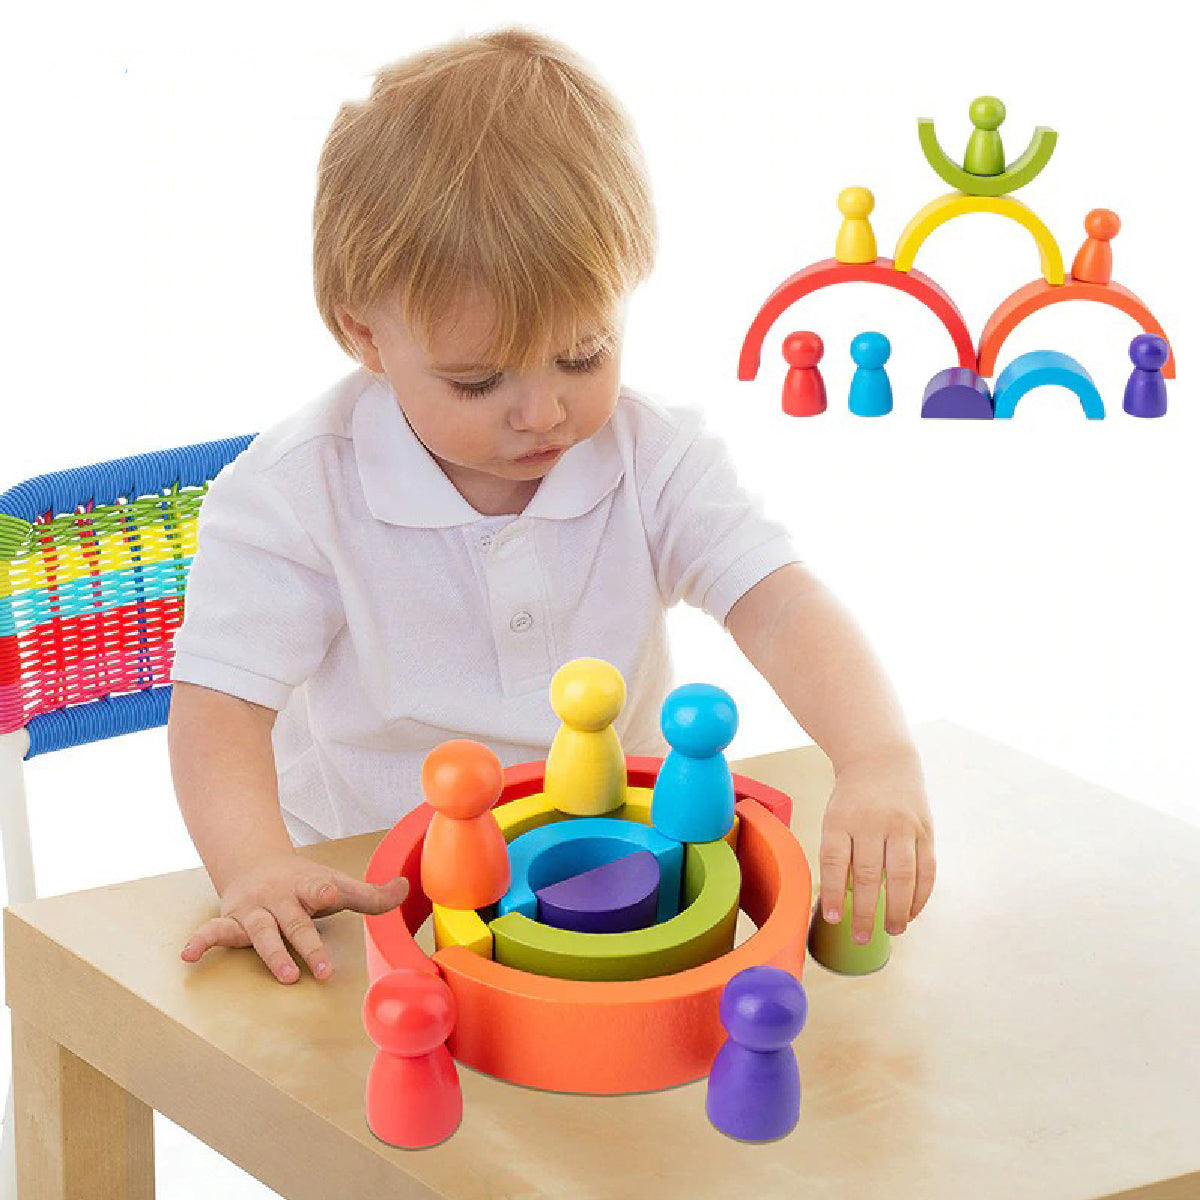 Baby Zone Rainbow Blocks ™